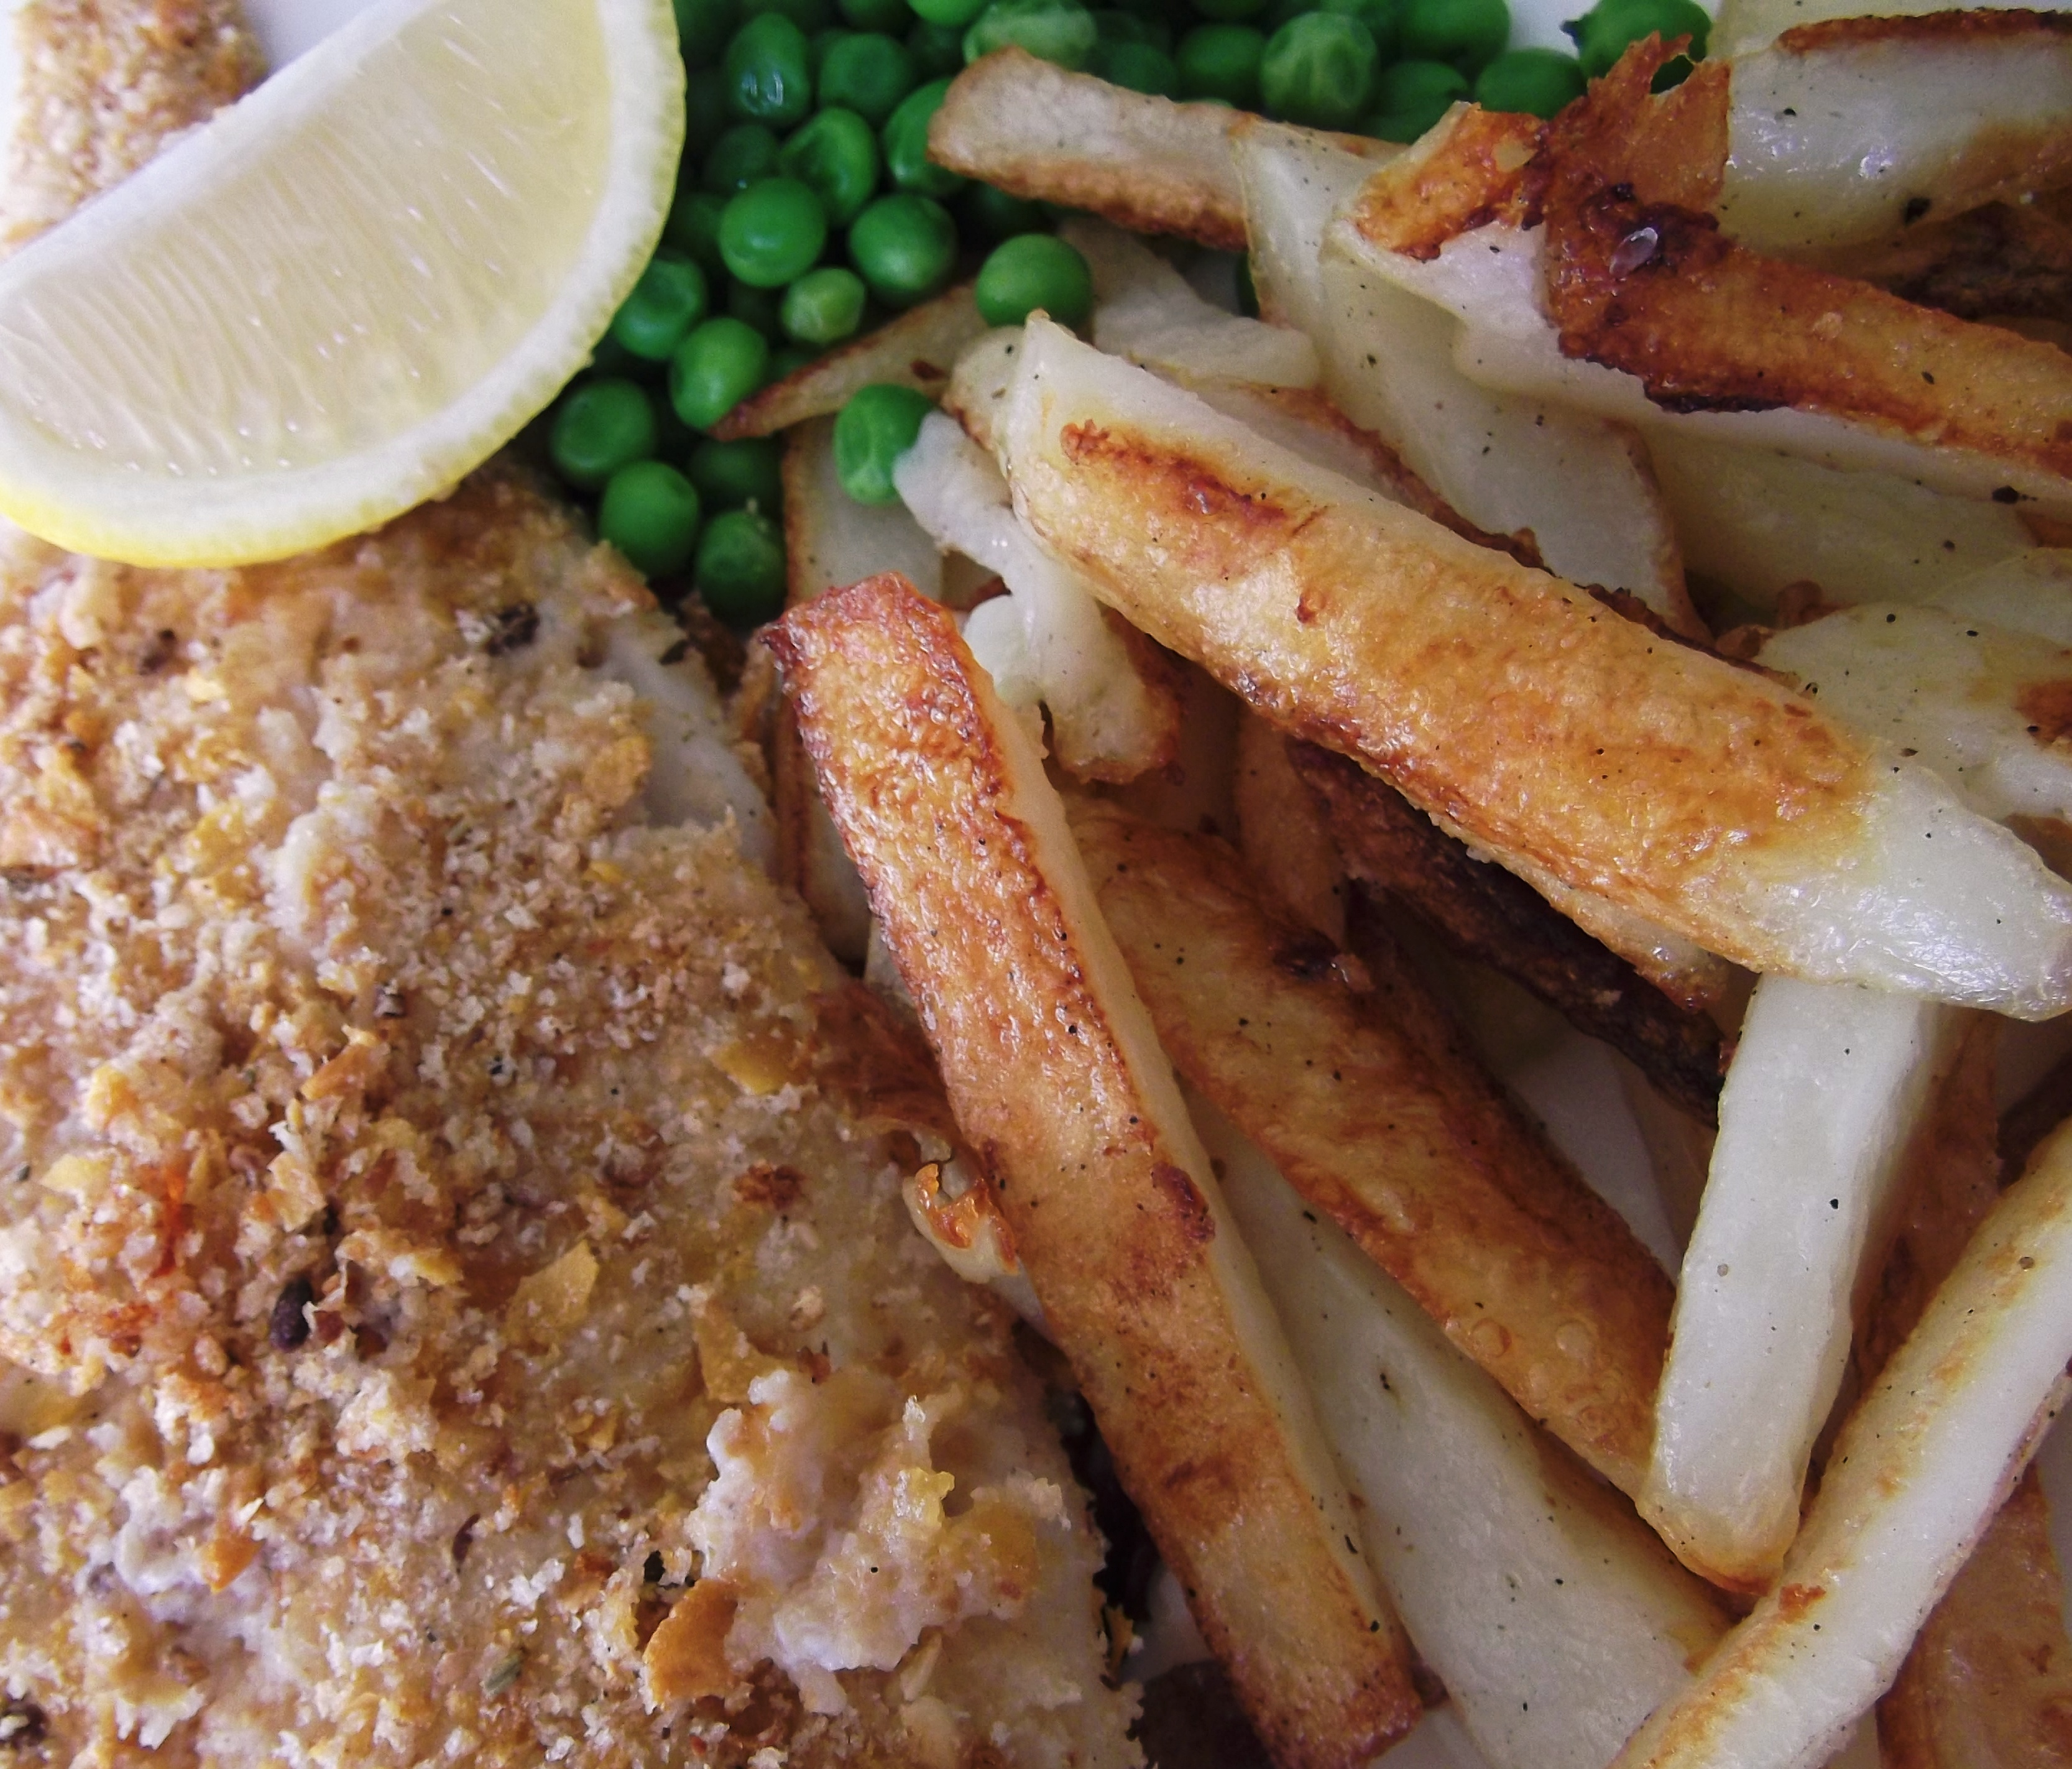 Diamond jubilee oven baked fish and chips recipe adaptors for Oven baked fish recipes